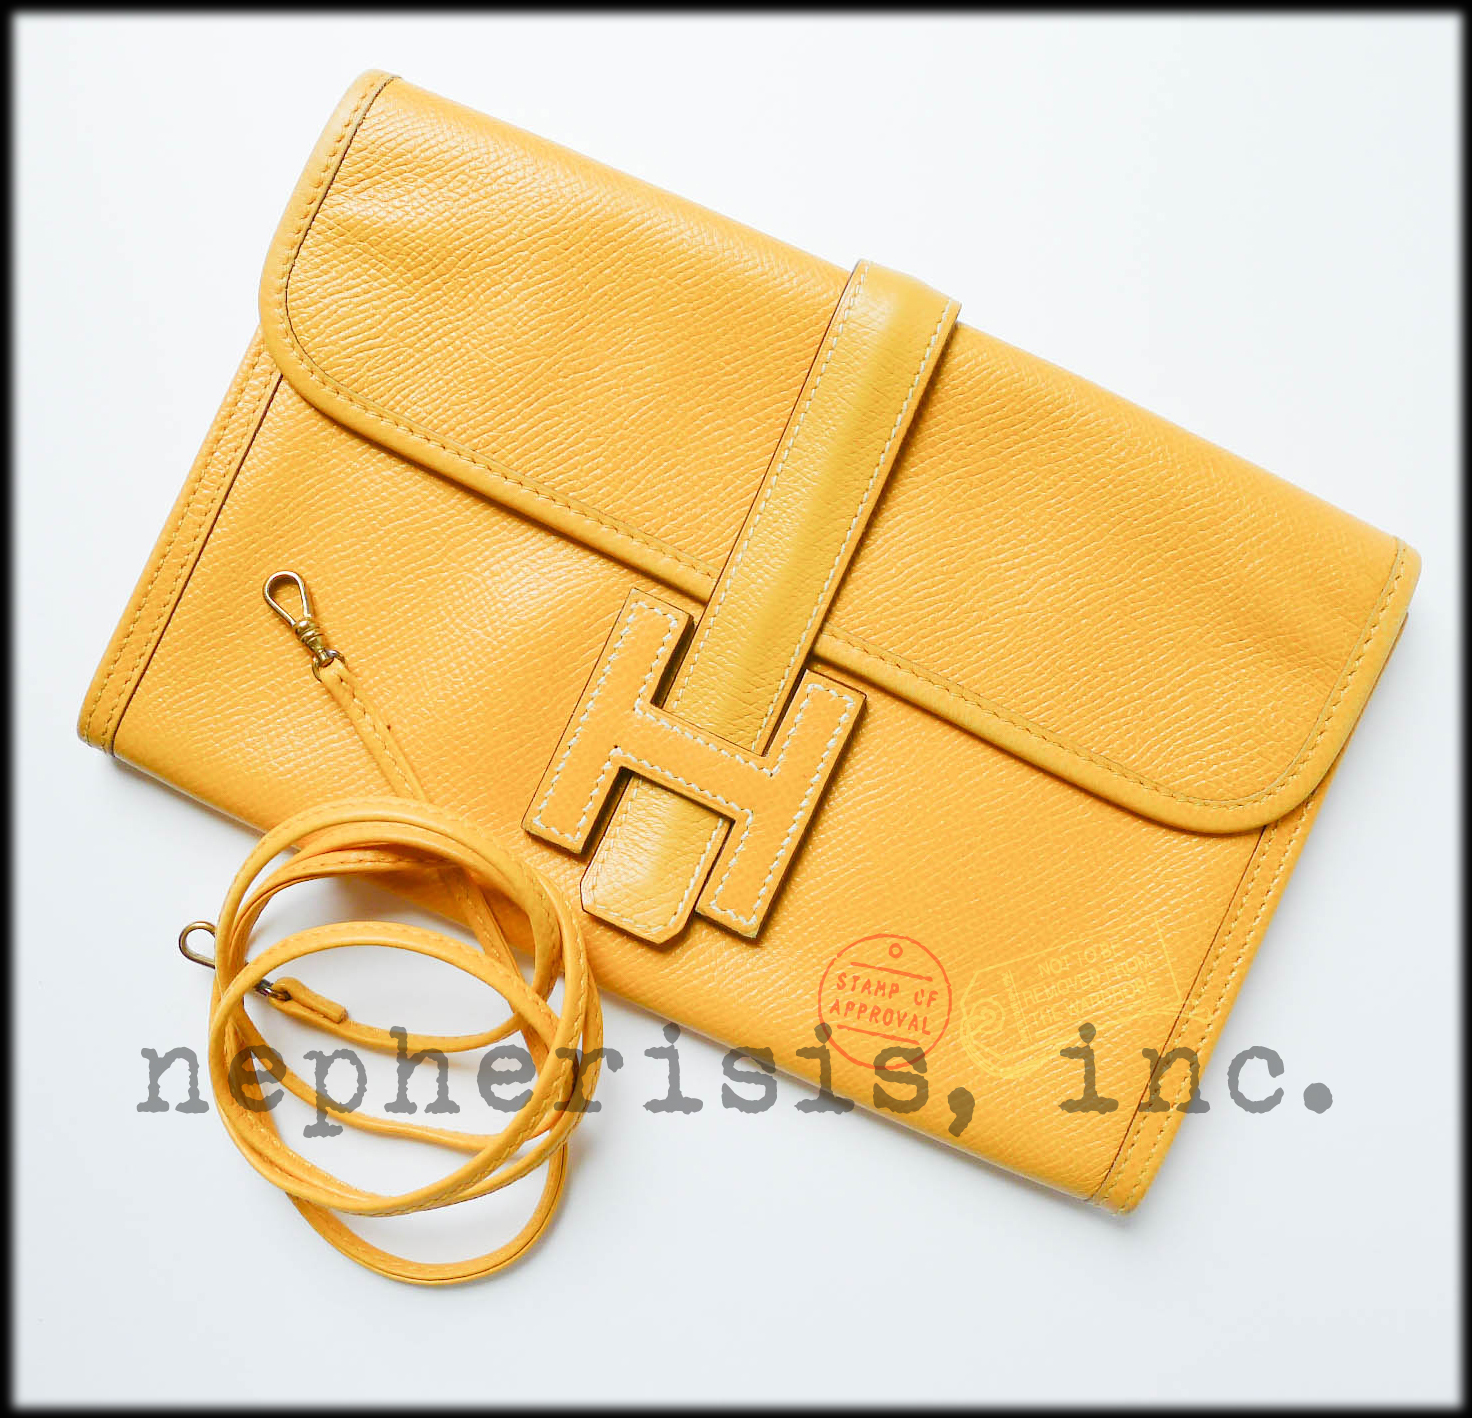 AUTH RARE Hermes MINI MINI JIGE Leather Clutch Bag with Strap JAUNE COURCHEVEL